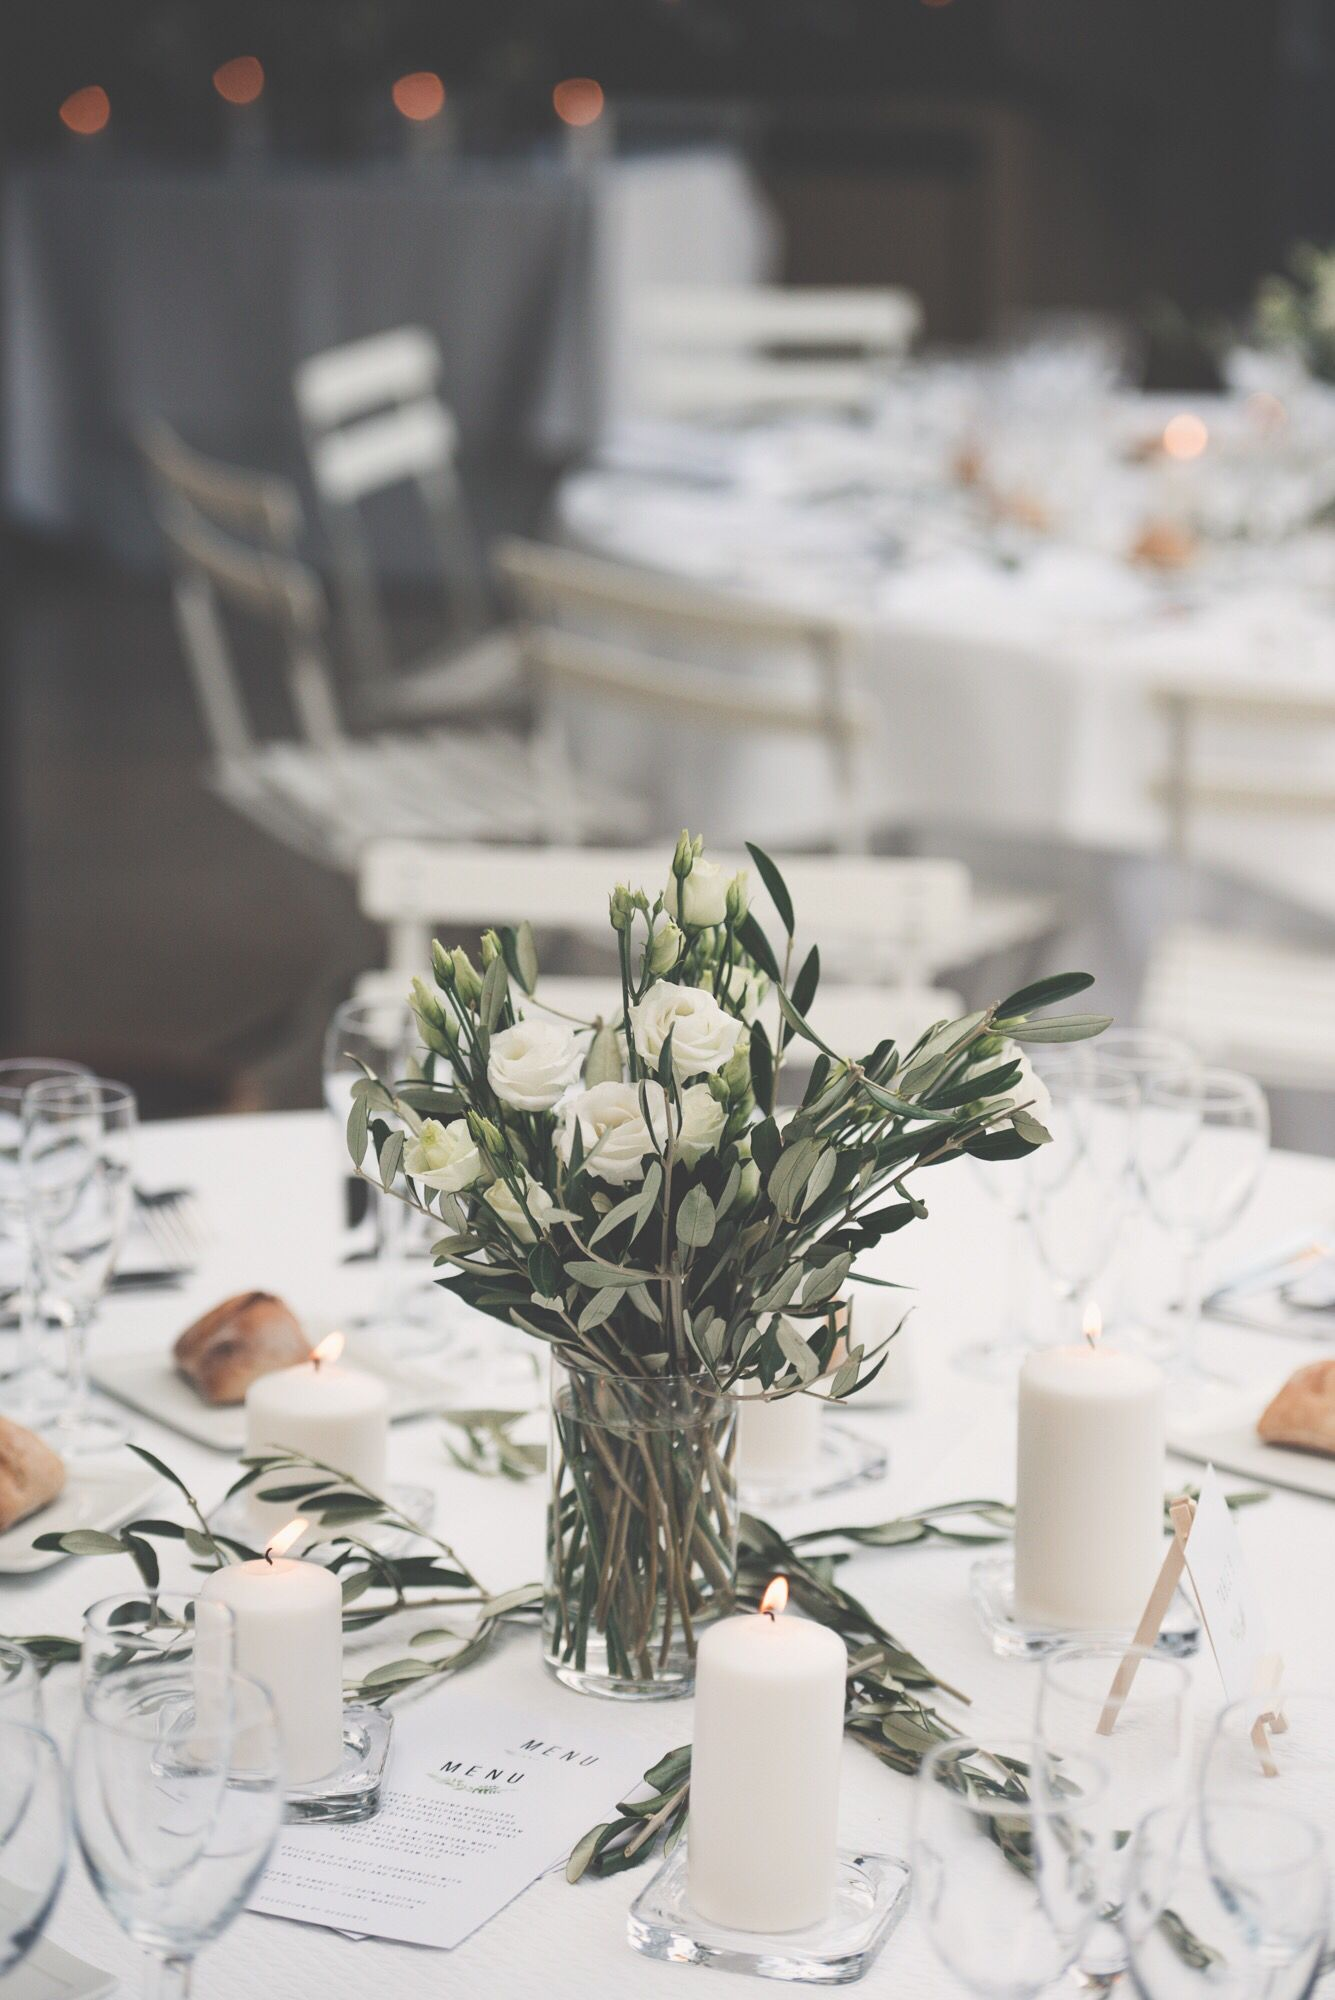 Wedding dinner in Provence. White flowers, olive branches and candles #whitecandleswedding